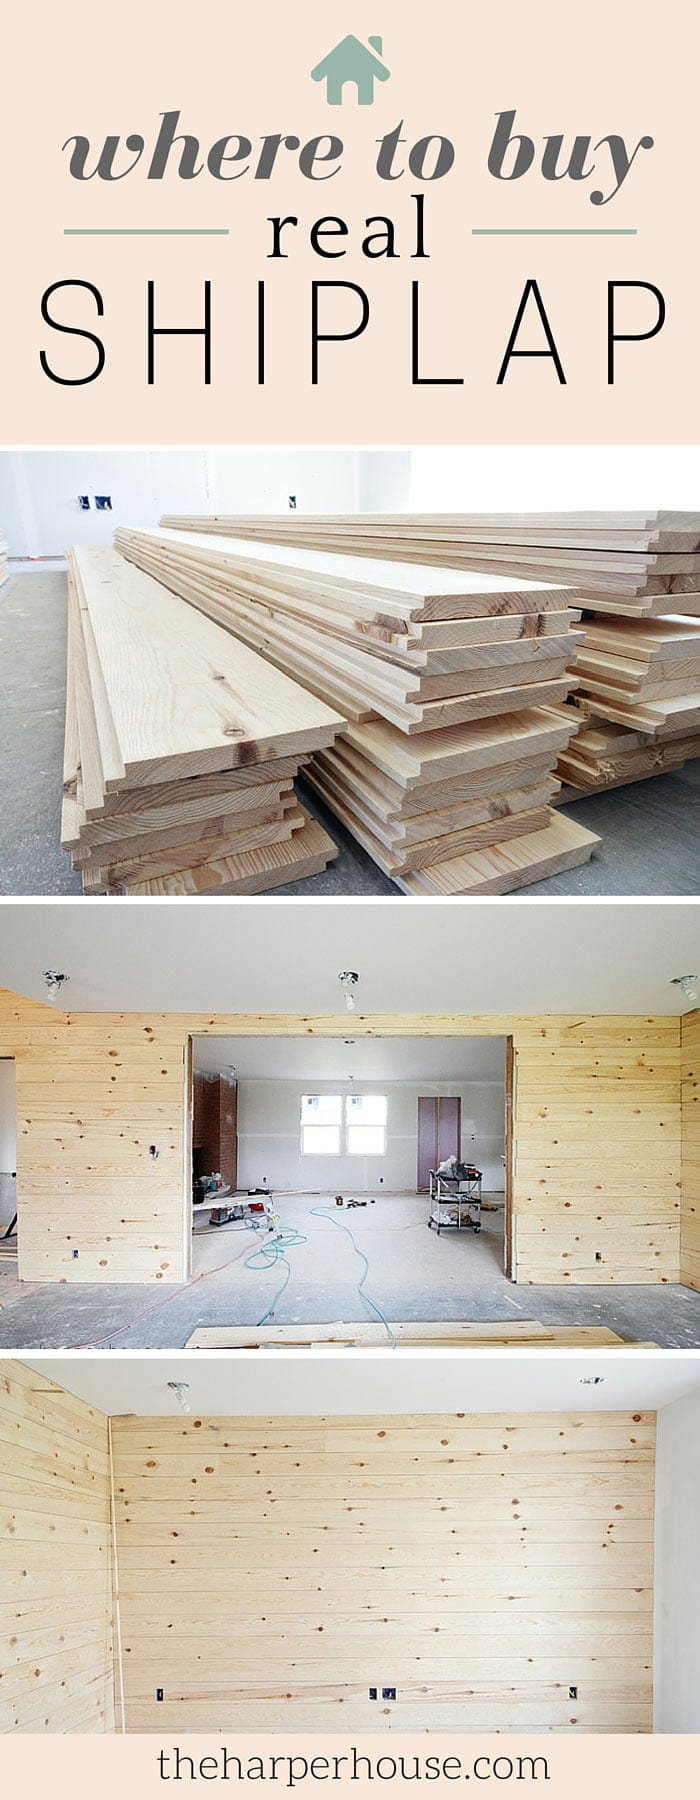 Are You Stumped On Where To Buy Shiplap? I'm Spilling The Beans On